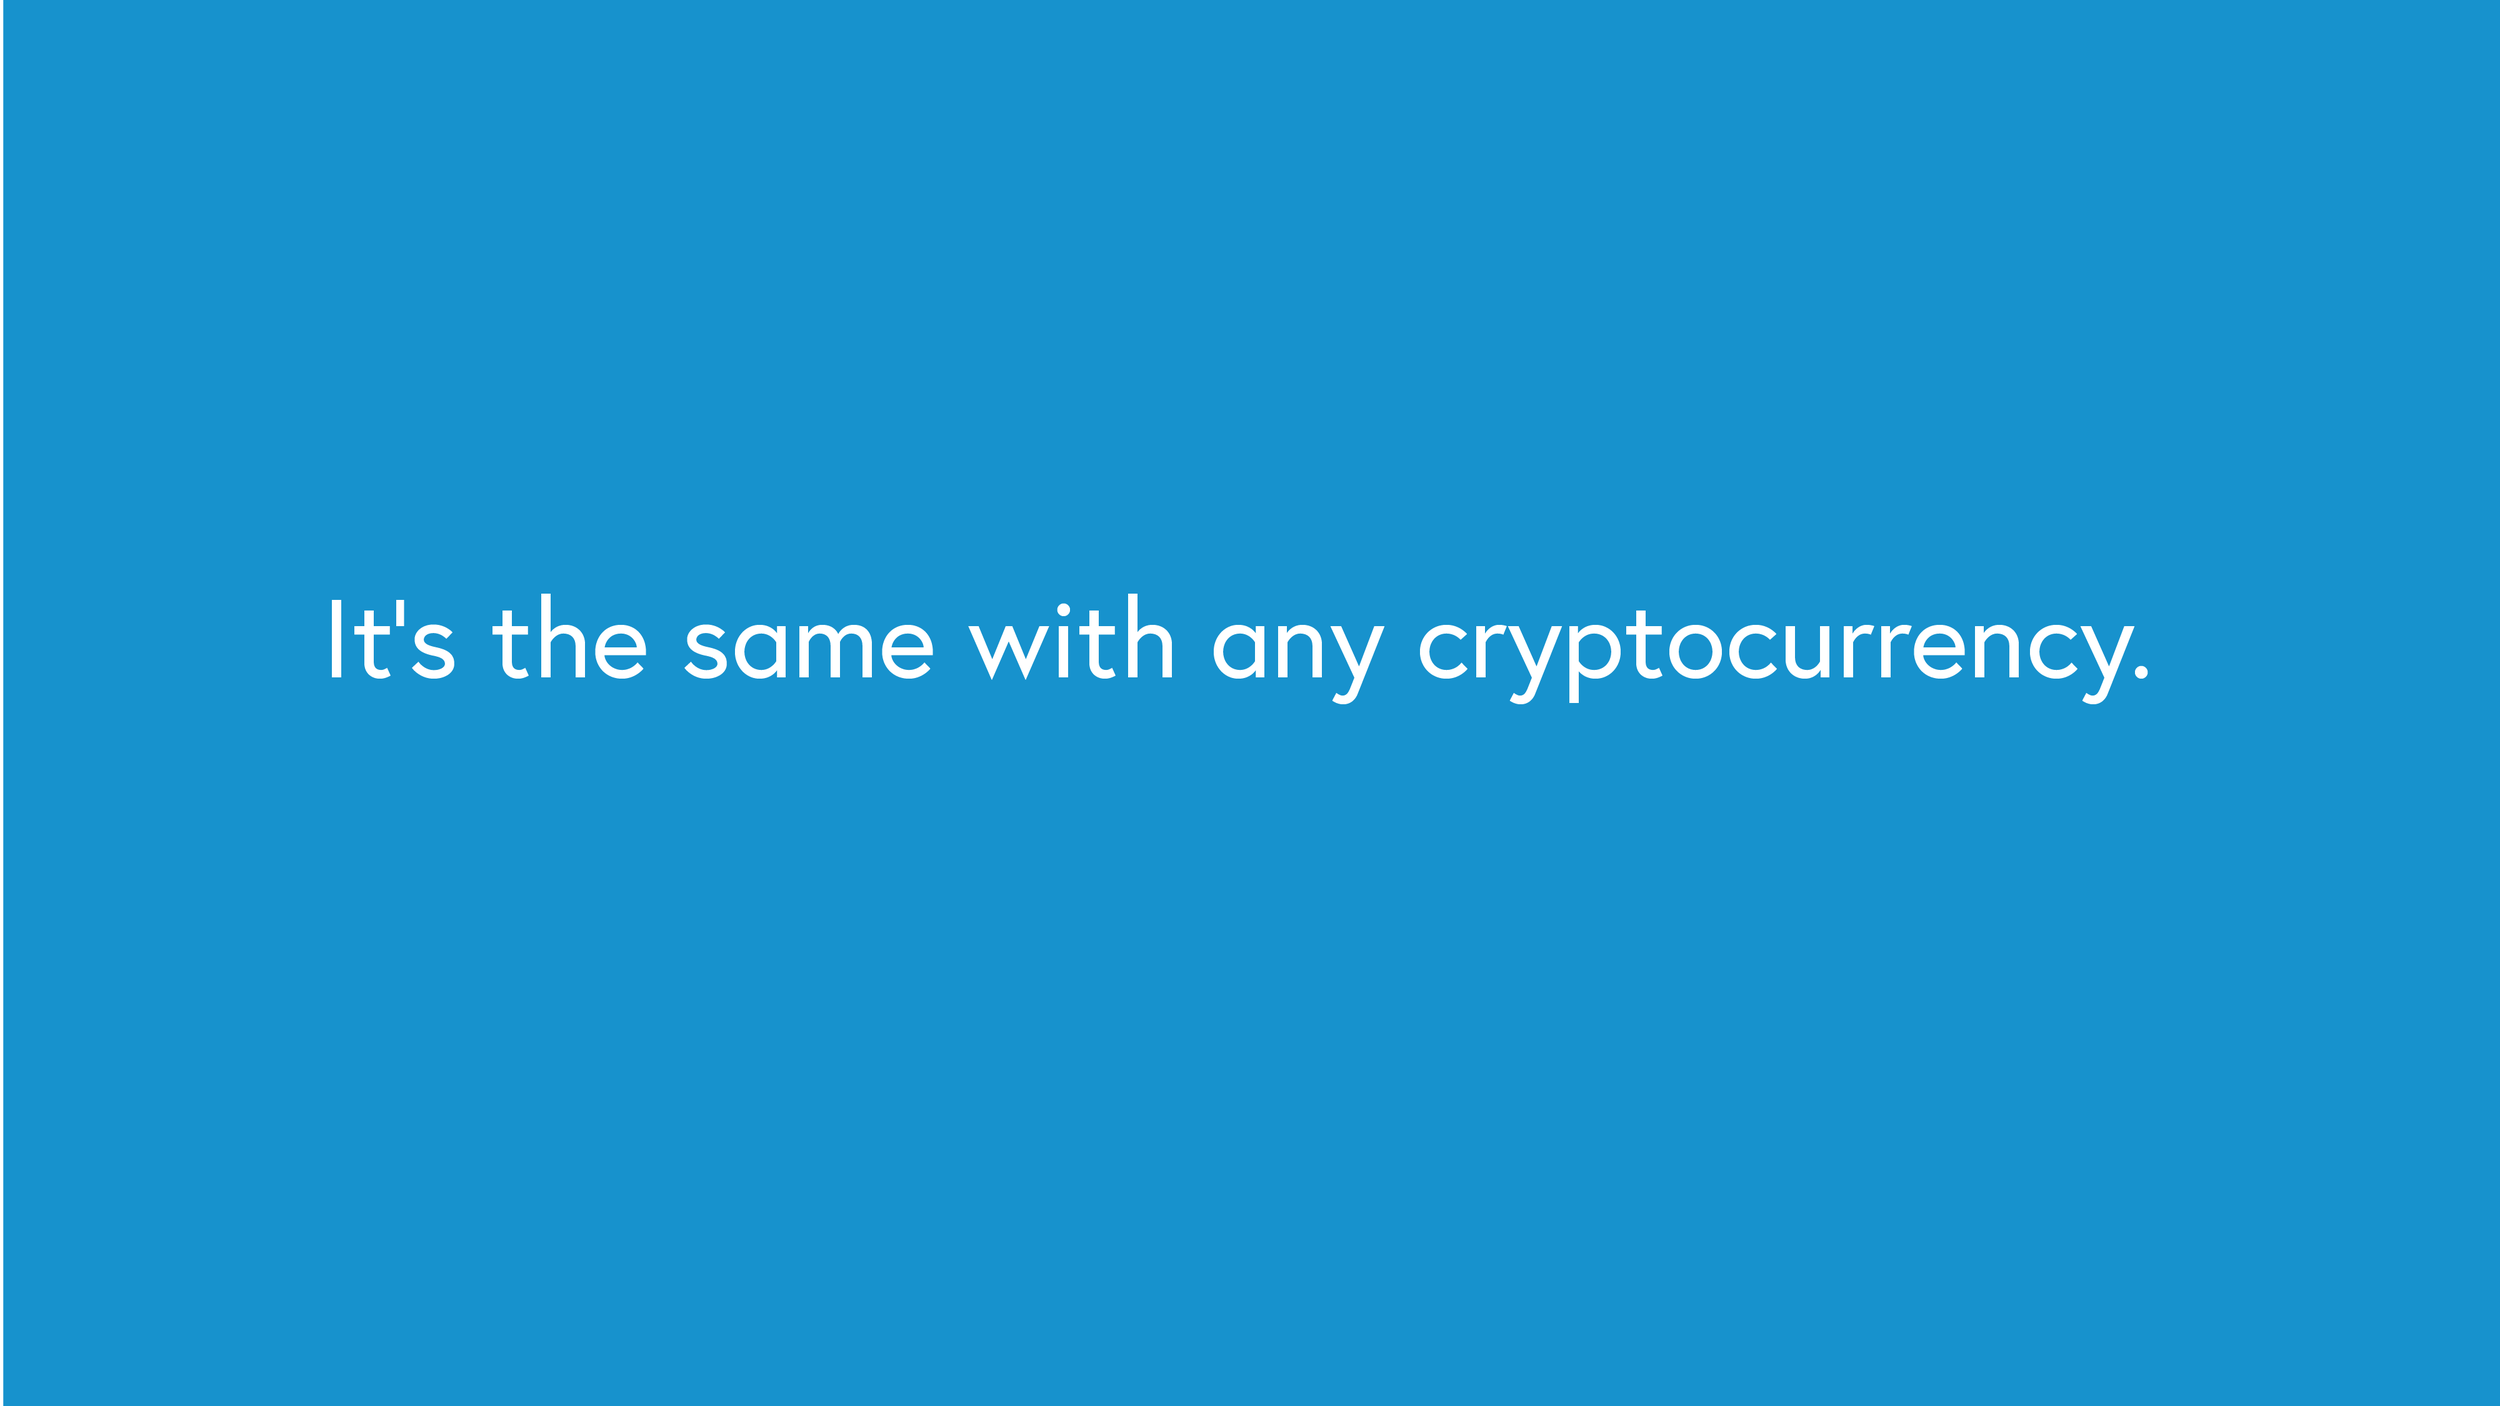 It's the same with any cryptocurrency